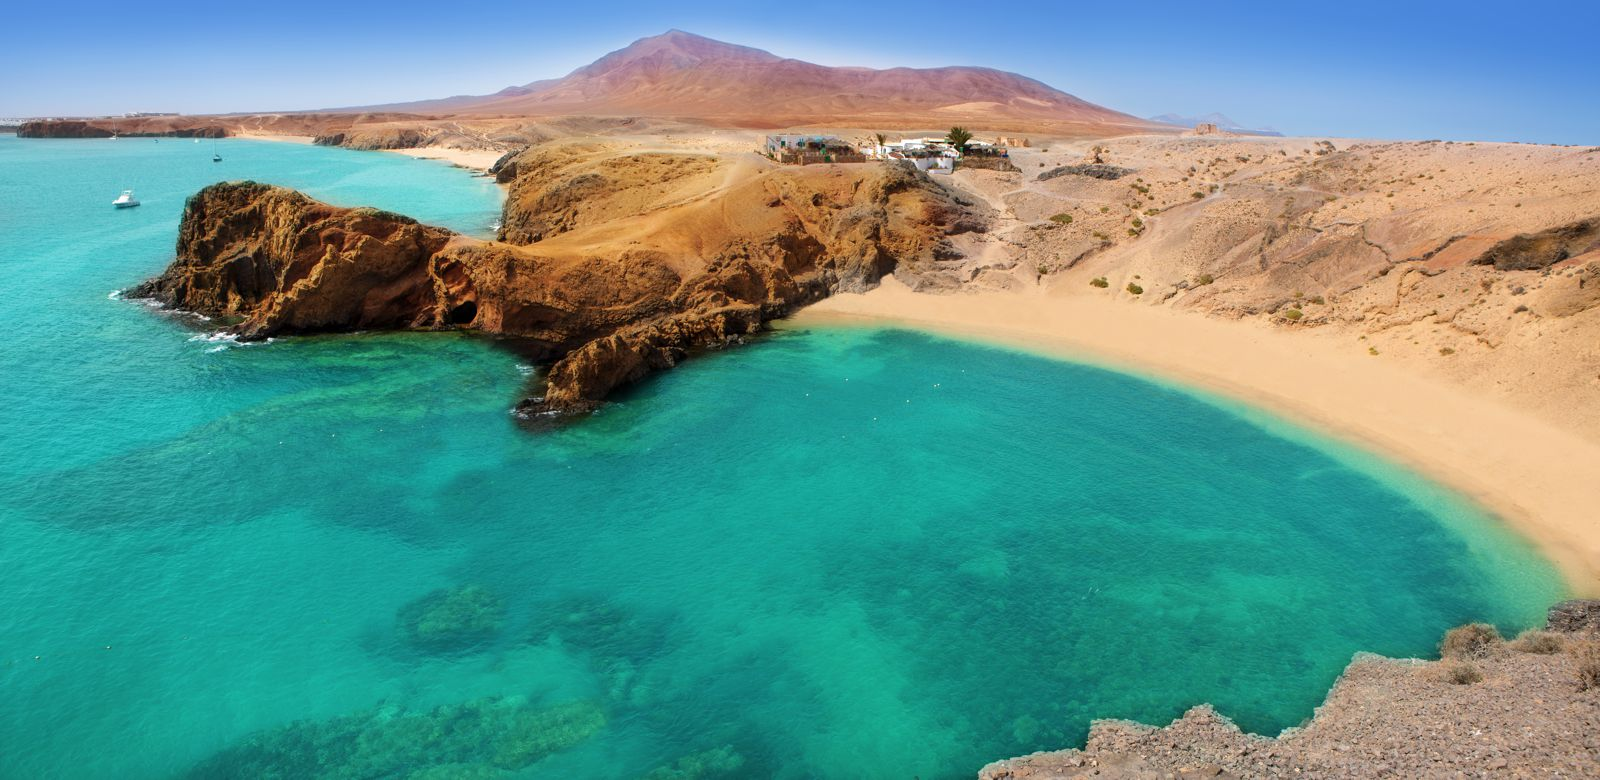 24 Things To See And Do In The Canary Islands (10)